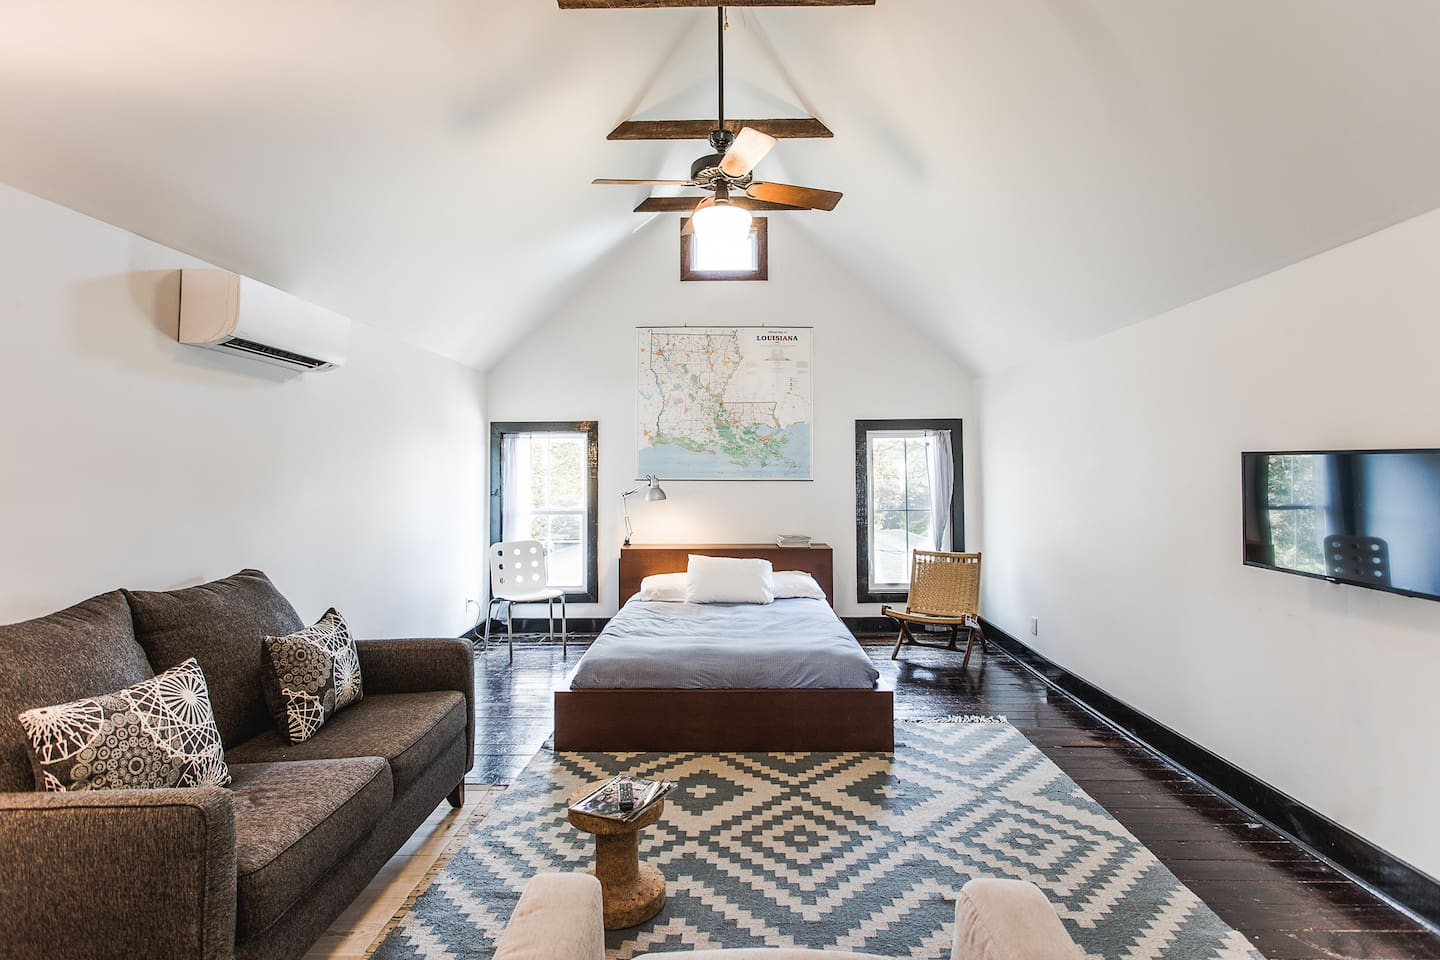 Fourteen foot ceilings with exposed beams in open loft space.